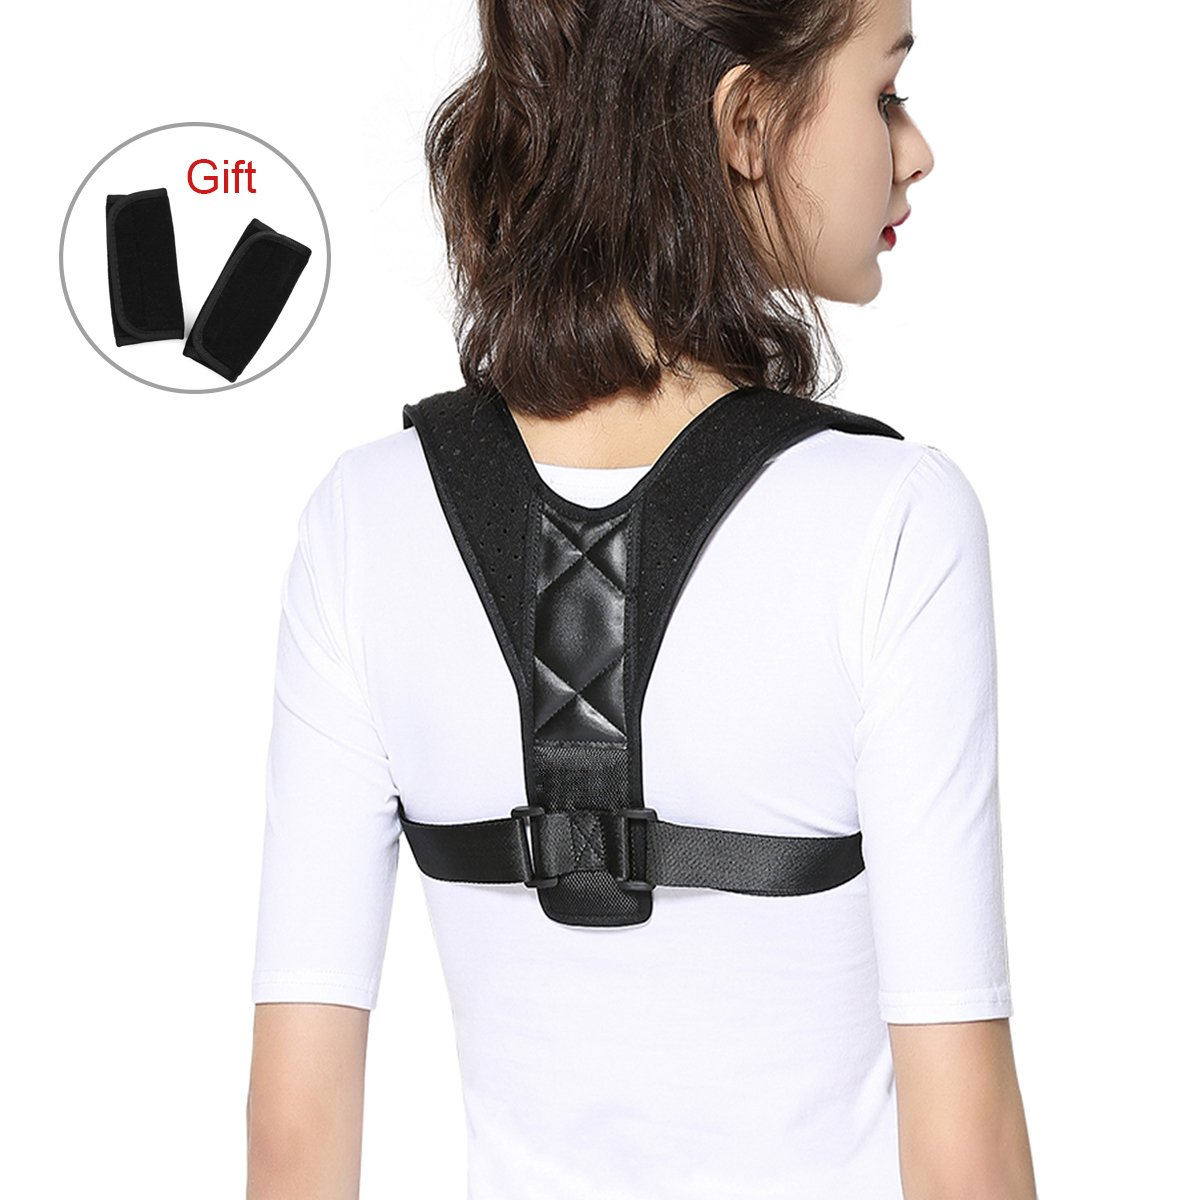 Upper Back Posture Corrector for Men and Women, Posture Corrector Adjustable Back Support Brace for Slouching & Hunching and Back Pain Relief, Elastic Comfortable Back Brace Shoulder Support with 2 Bo